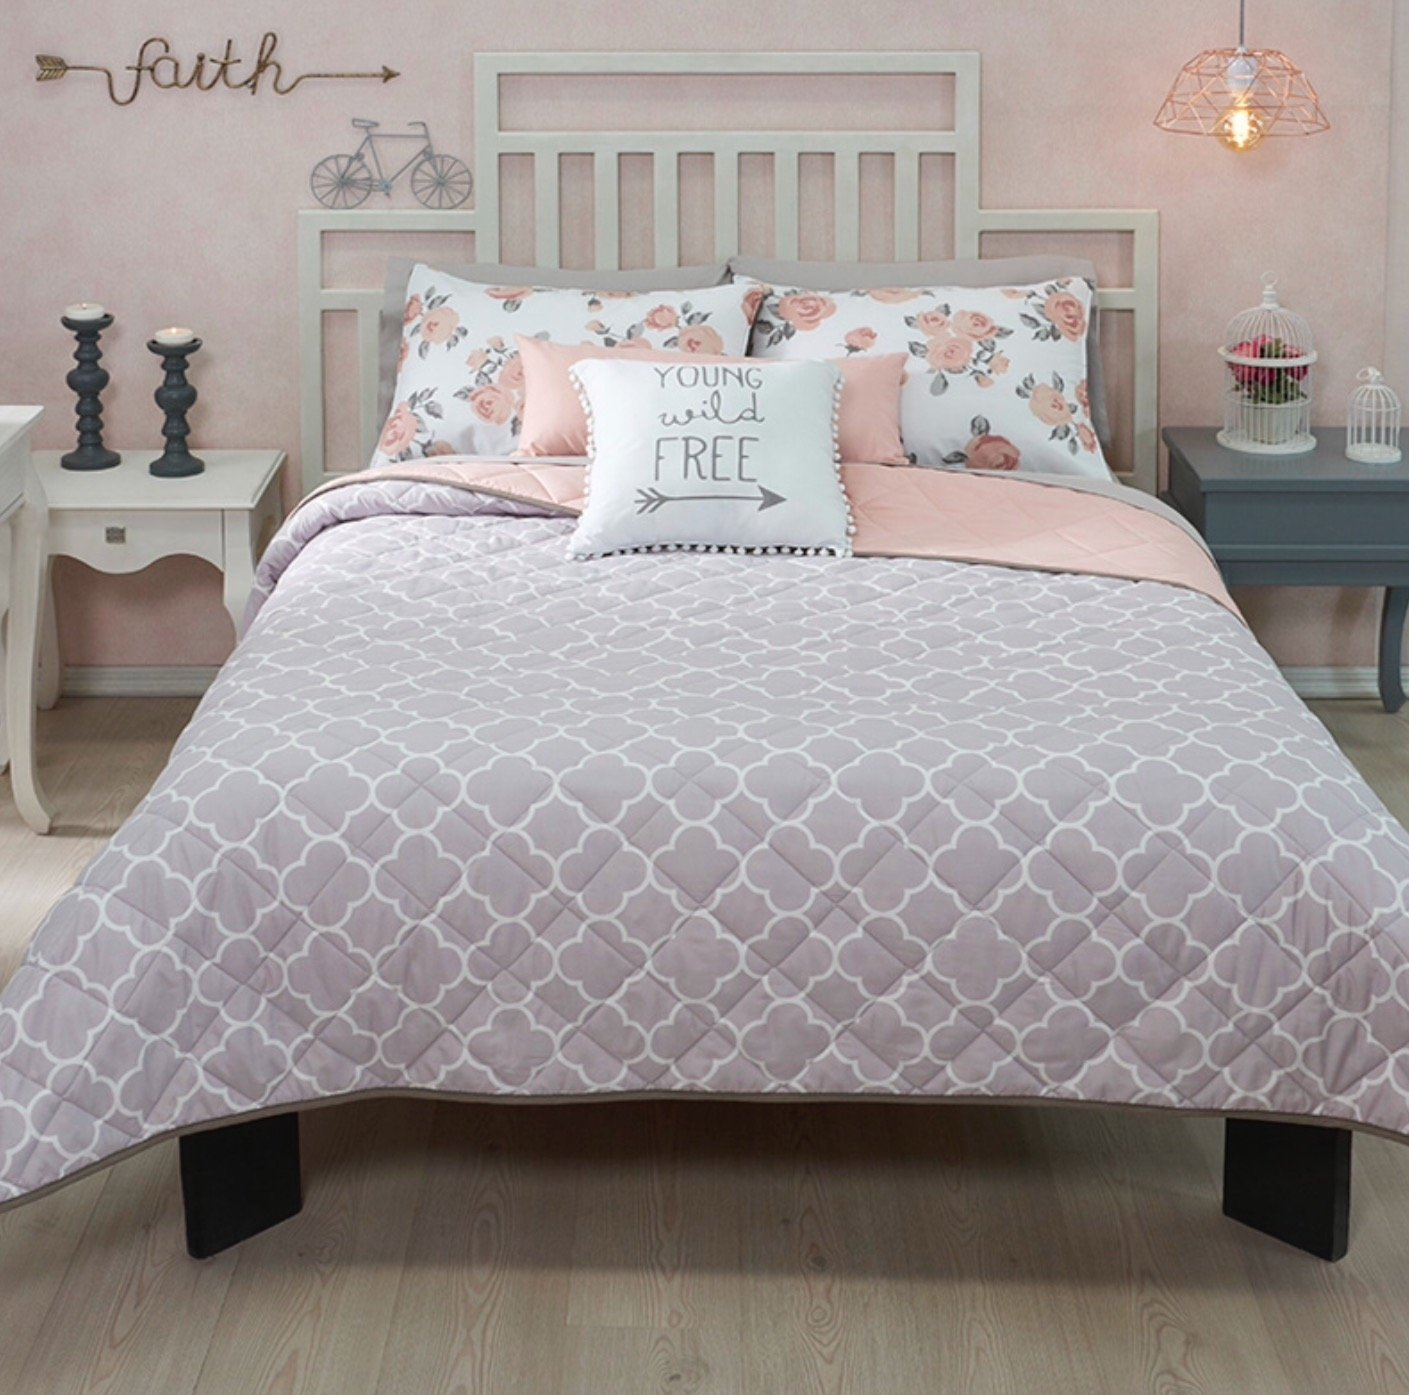 NEW FREE GRAY/PINK TEENS GIRLS REVERSIBLE COMFORTER SET 3 PCS TWIN SIZE by JORGE'S HOME FASHION (Image #6)